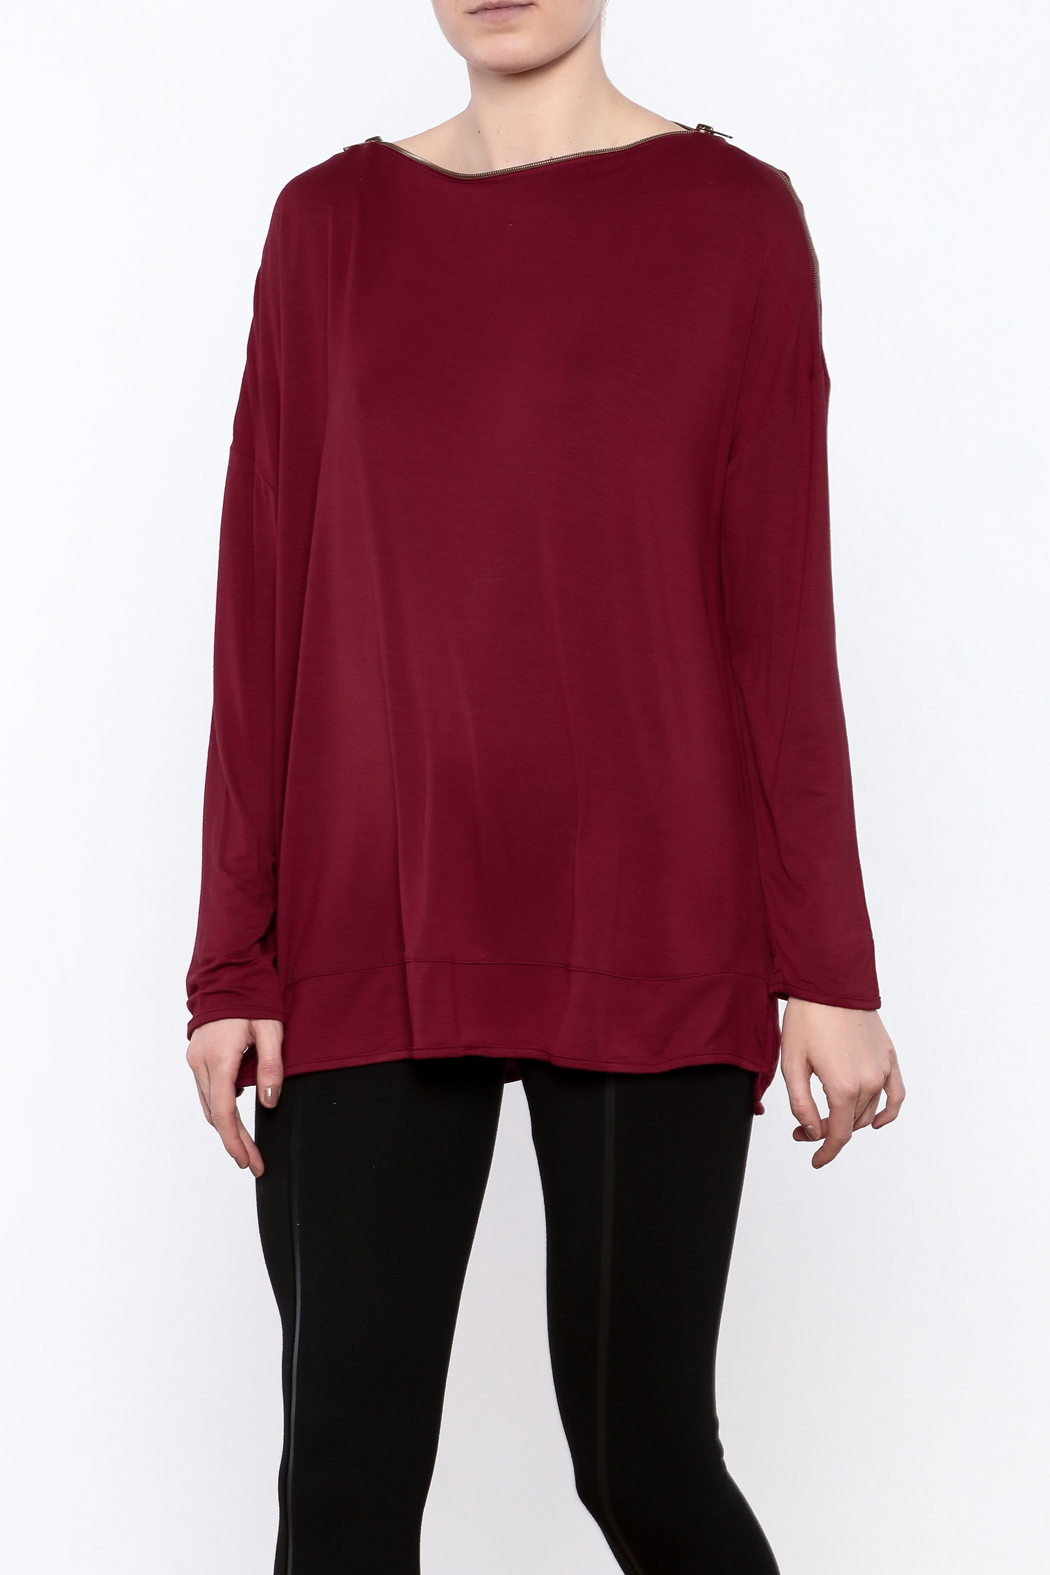 Simply Noelle Zipper Neck Top - Main Image